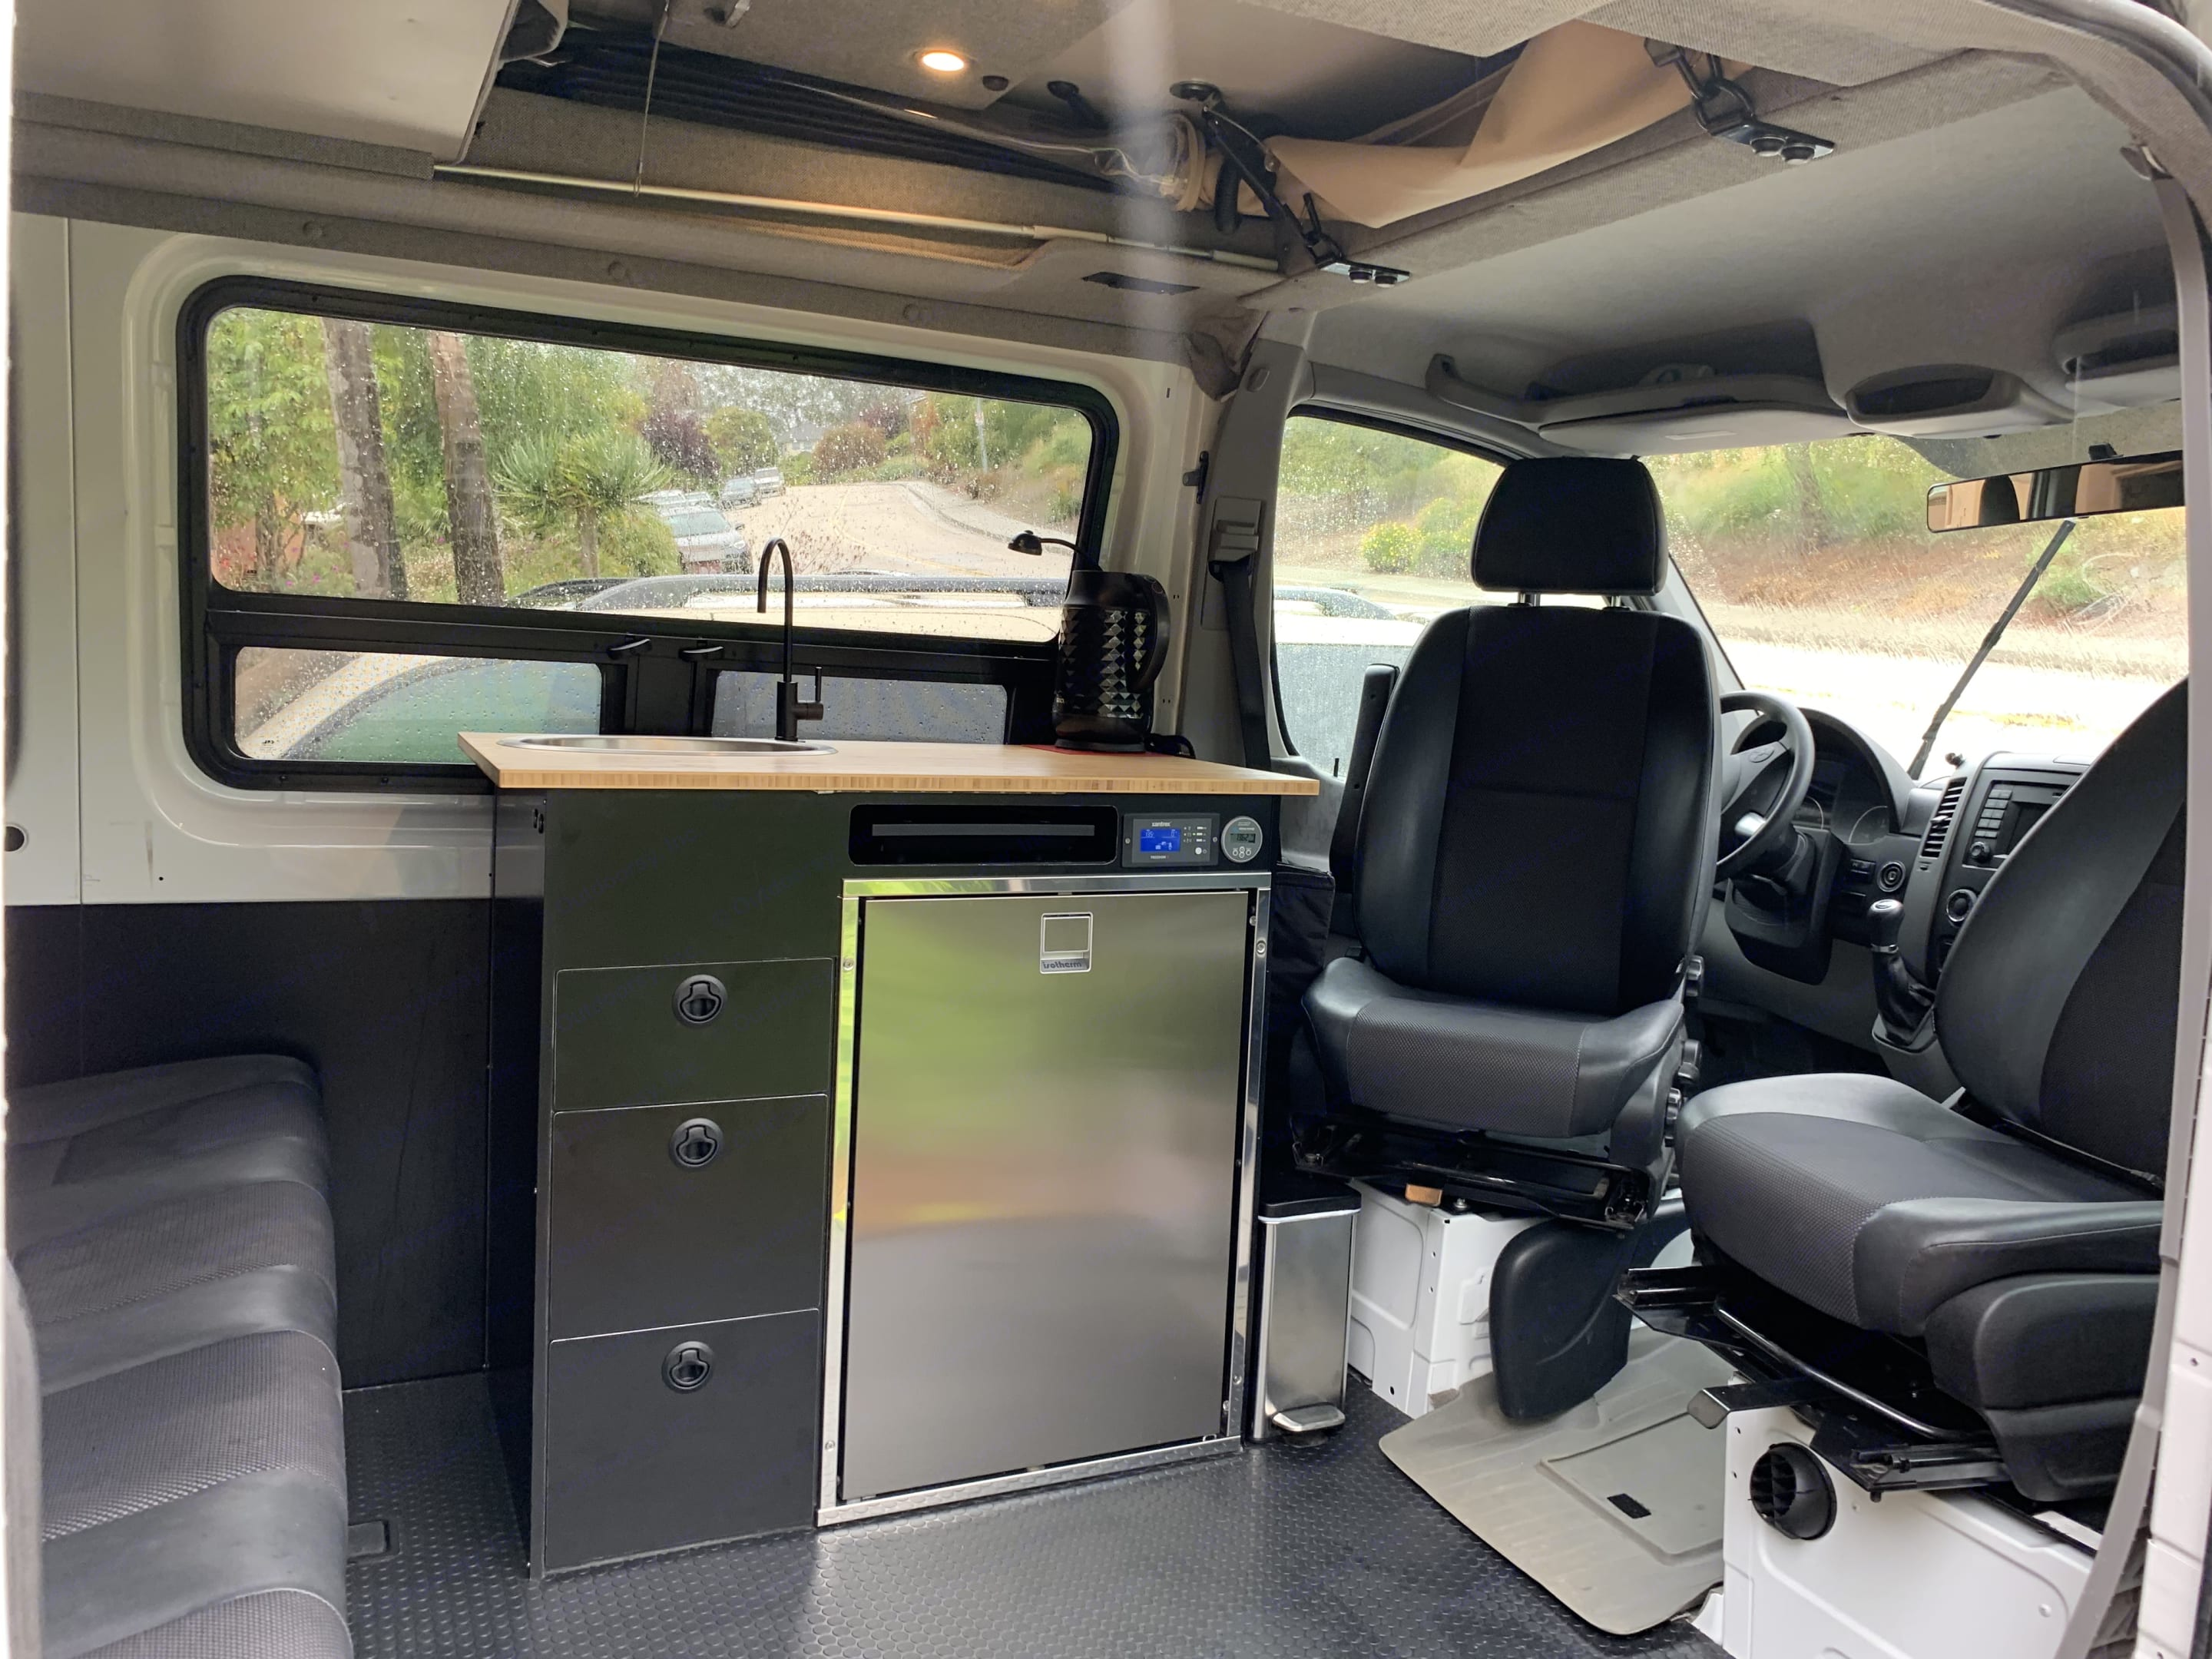 Very clean and functional interior; swivel seats, kitchen, seatbelts for 6.. Mercedes-Benz Sprinter 2018